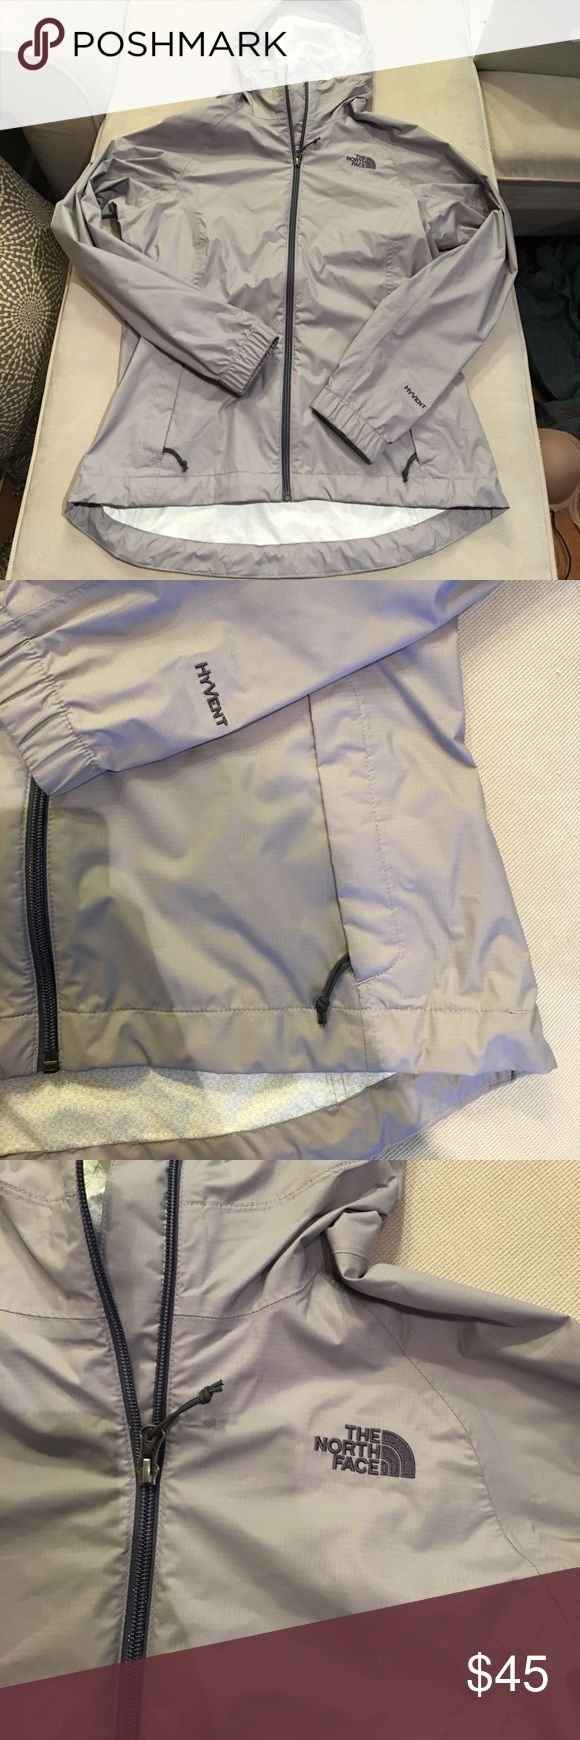 Like new grayish purple north face rain jacket This rain jacket is such a beautiful color. It is in like new condition and fits very flattering, has two zipper front pockets and one on the back of the hood, the bottom of the coat tightens as does the hood to call all wetness out! I ❤️ offers! The North Face Jackets & Coats